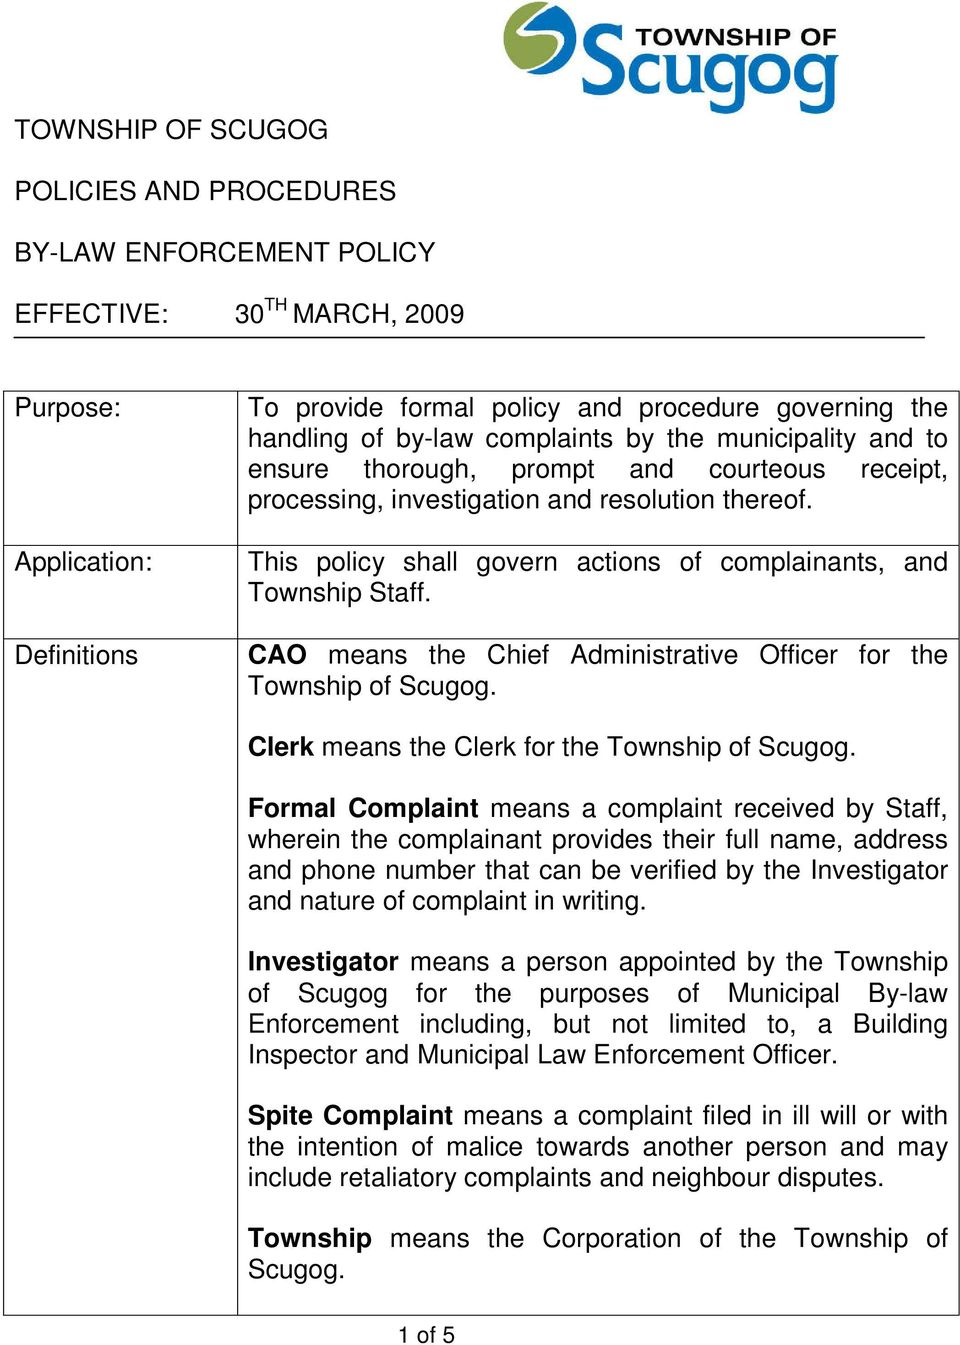 This policy shall govern actions of complainants, and Township Staff. CAO means the Chief Administrative Officer for the Township of Scugog. Clerk means the Clerk for the Township of Scugog.